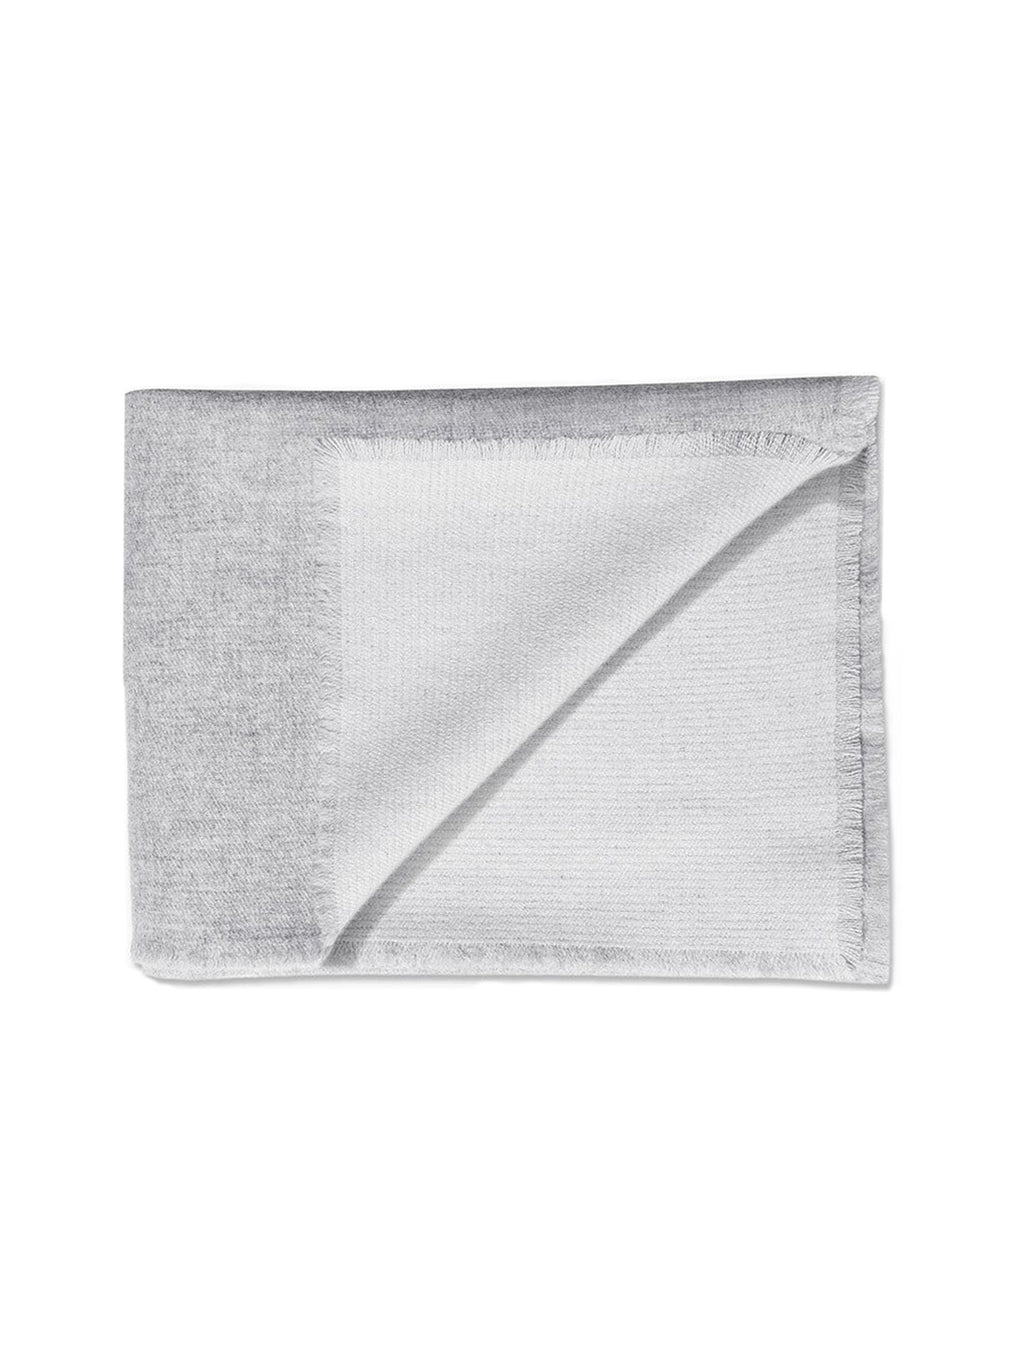 Double Sided Cashmere Throw - Grey / Ivory - thumbnail 1